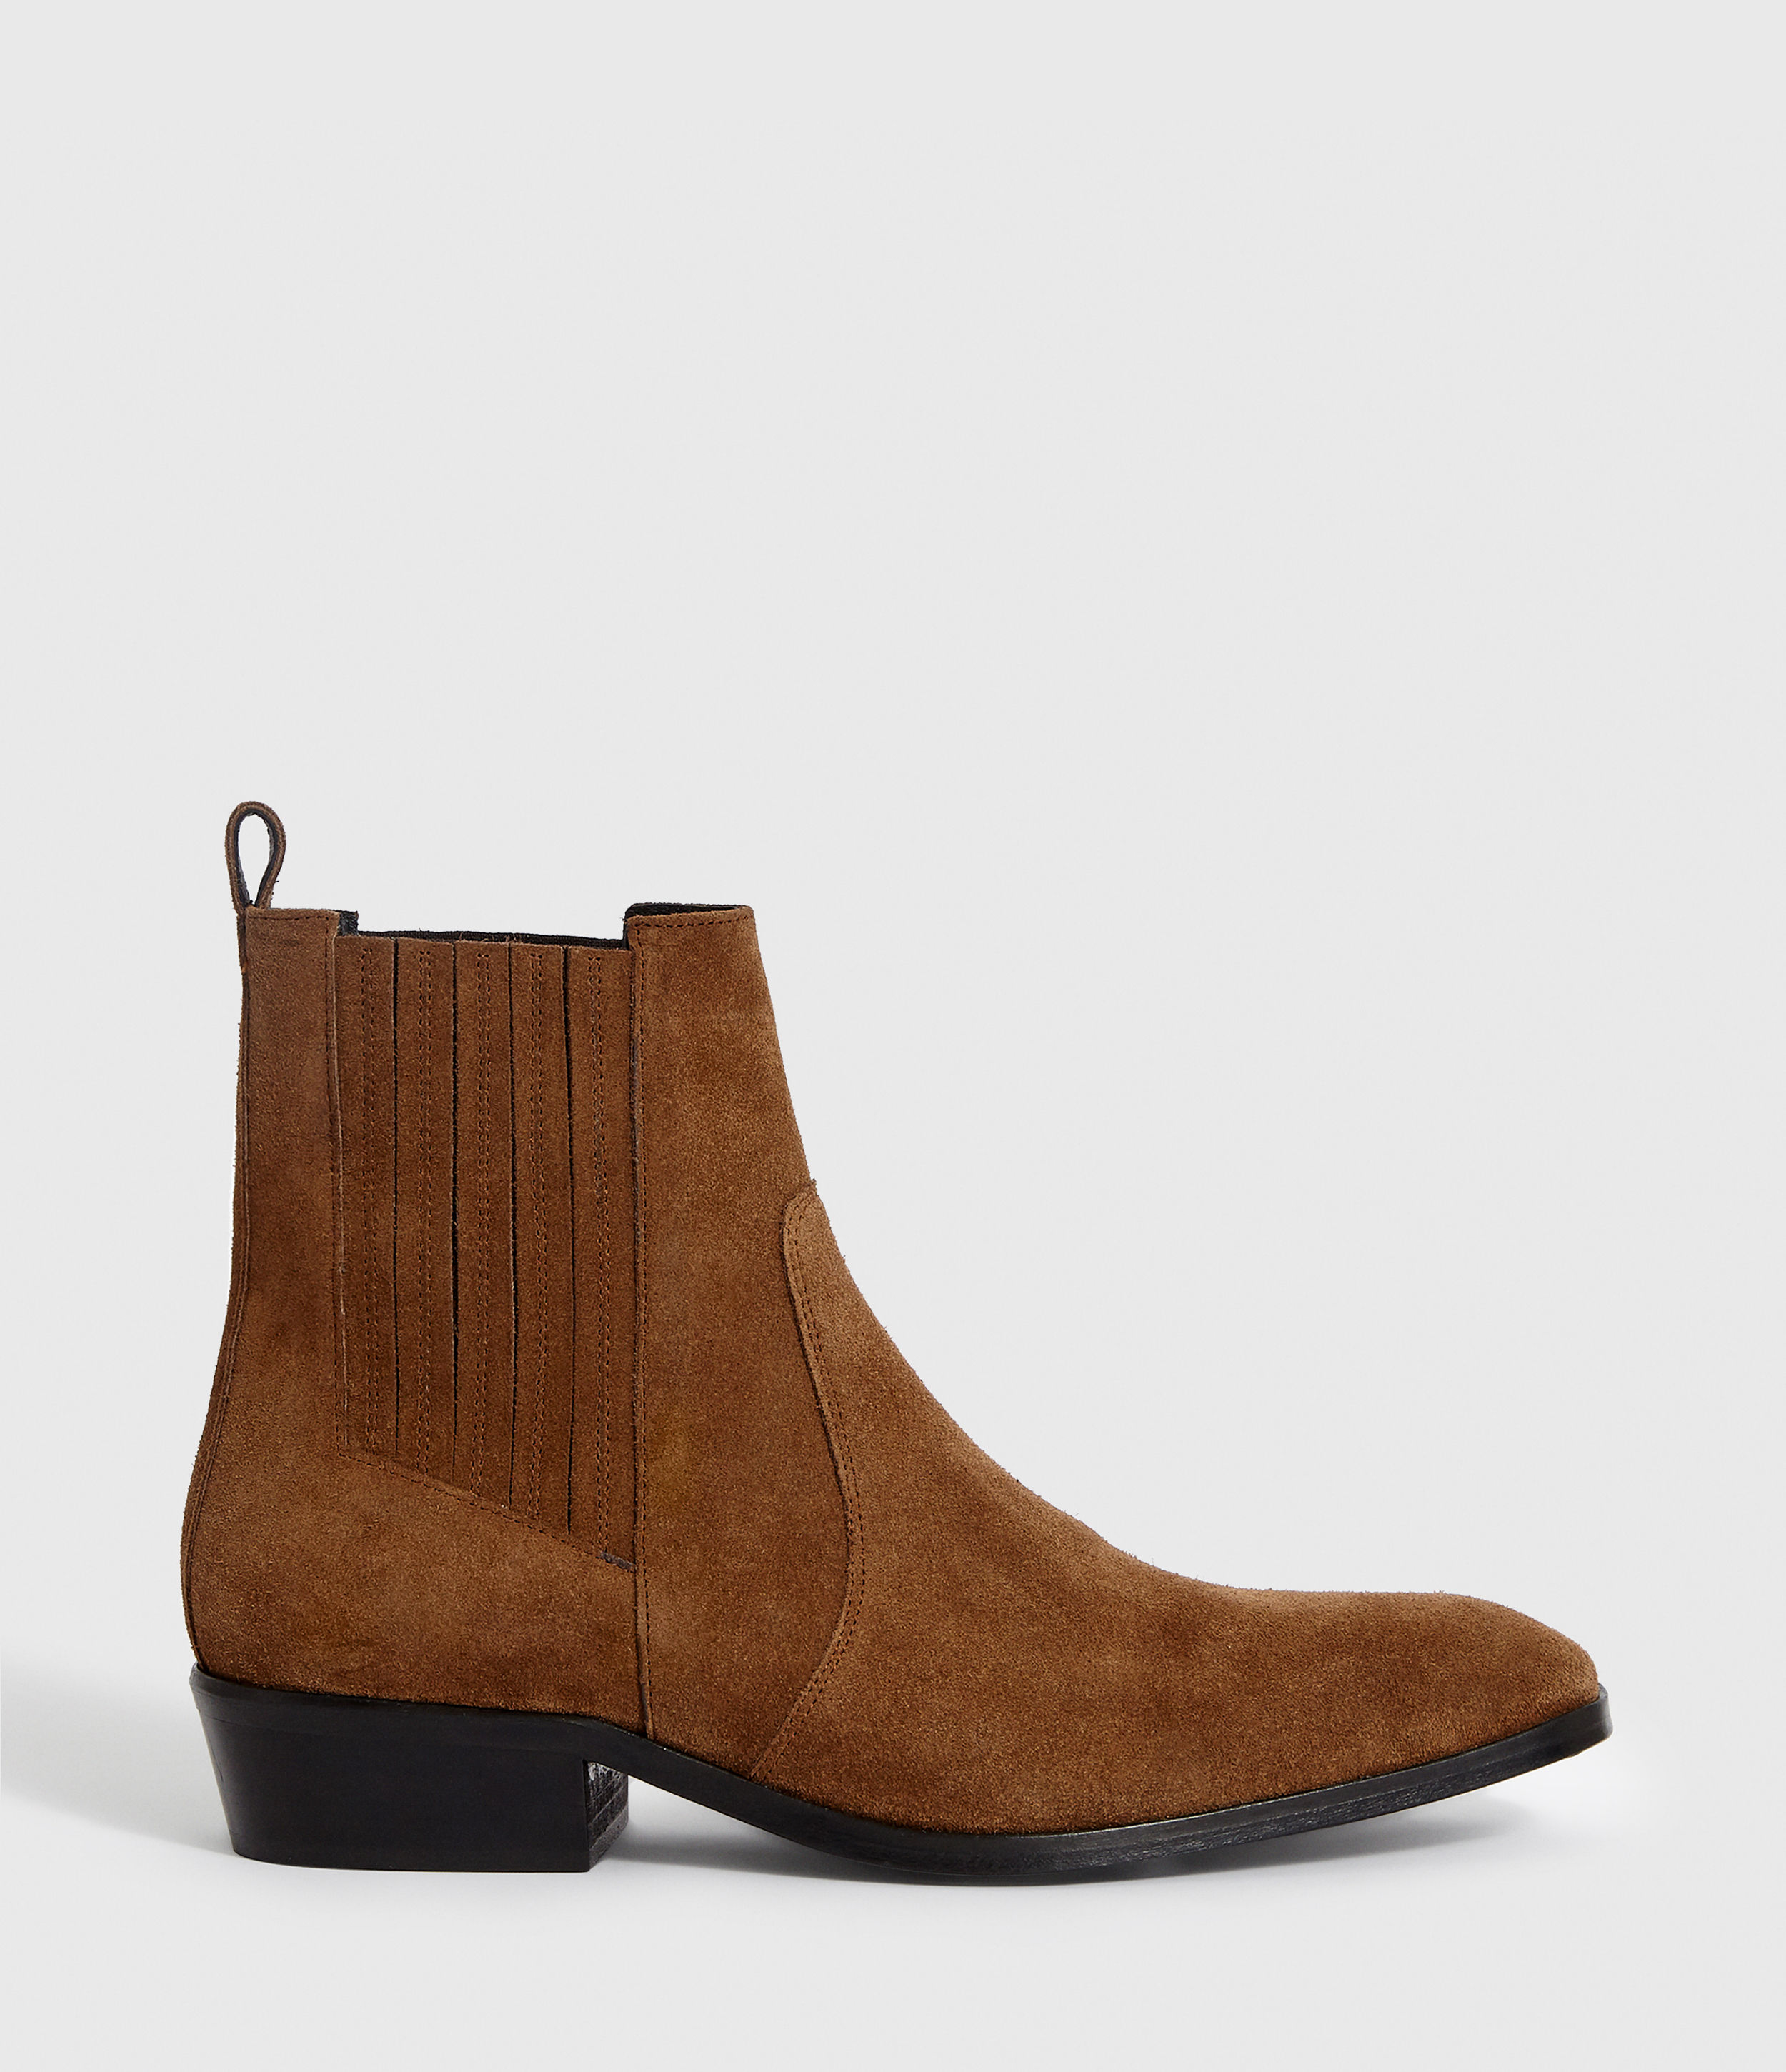 AllSaints Mens Rico Boot, Tan, Size: UK 8/US 9/EU 42